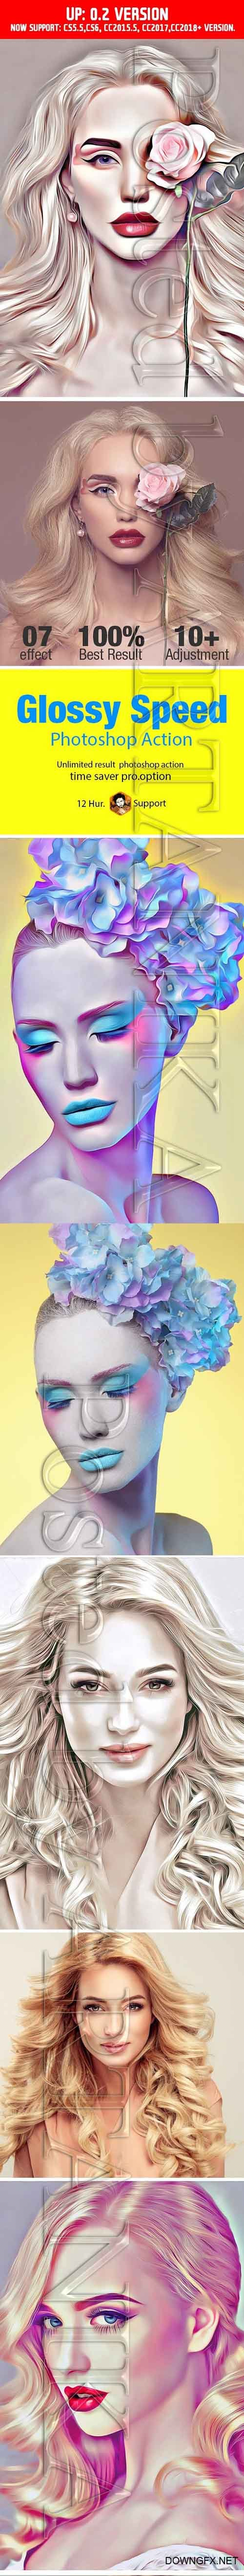 GraphicRiver - Glossy Speed Art Action 21189938